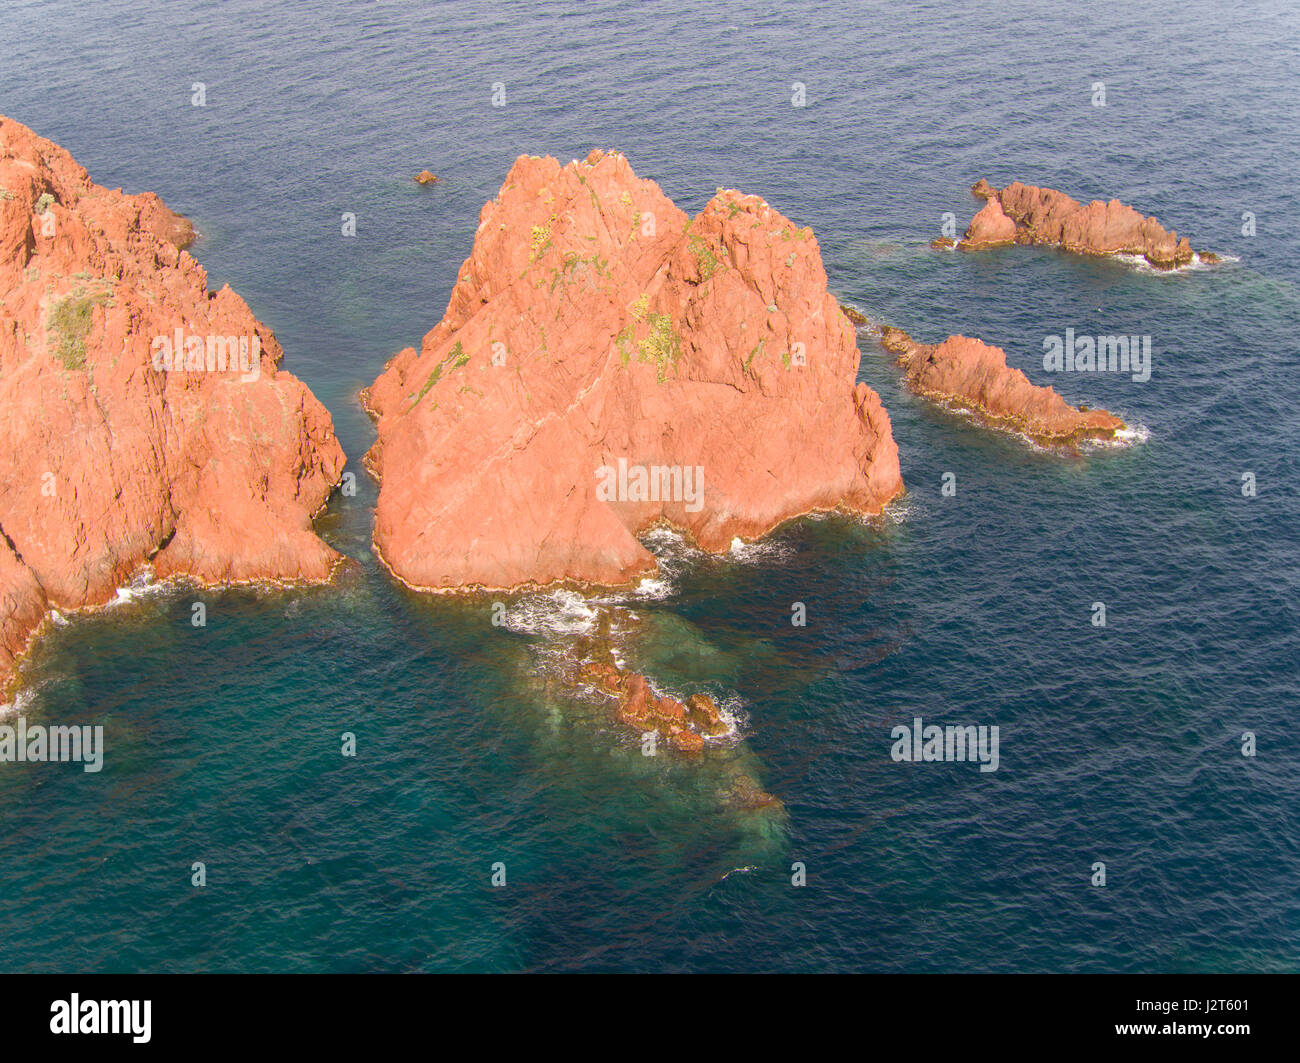 Meer STACK OFF THE COAST von THE ESTEREL massiv (Luftbild). Cap du Dramont, Saint-Raphaël, Var, Côte d Stockbild